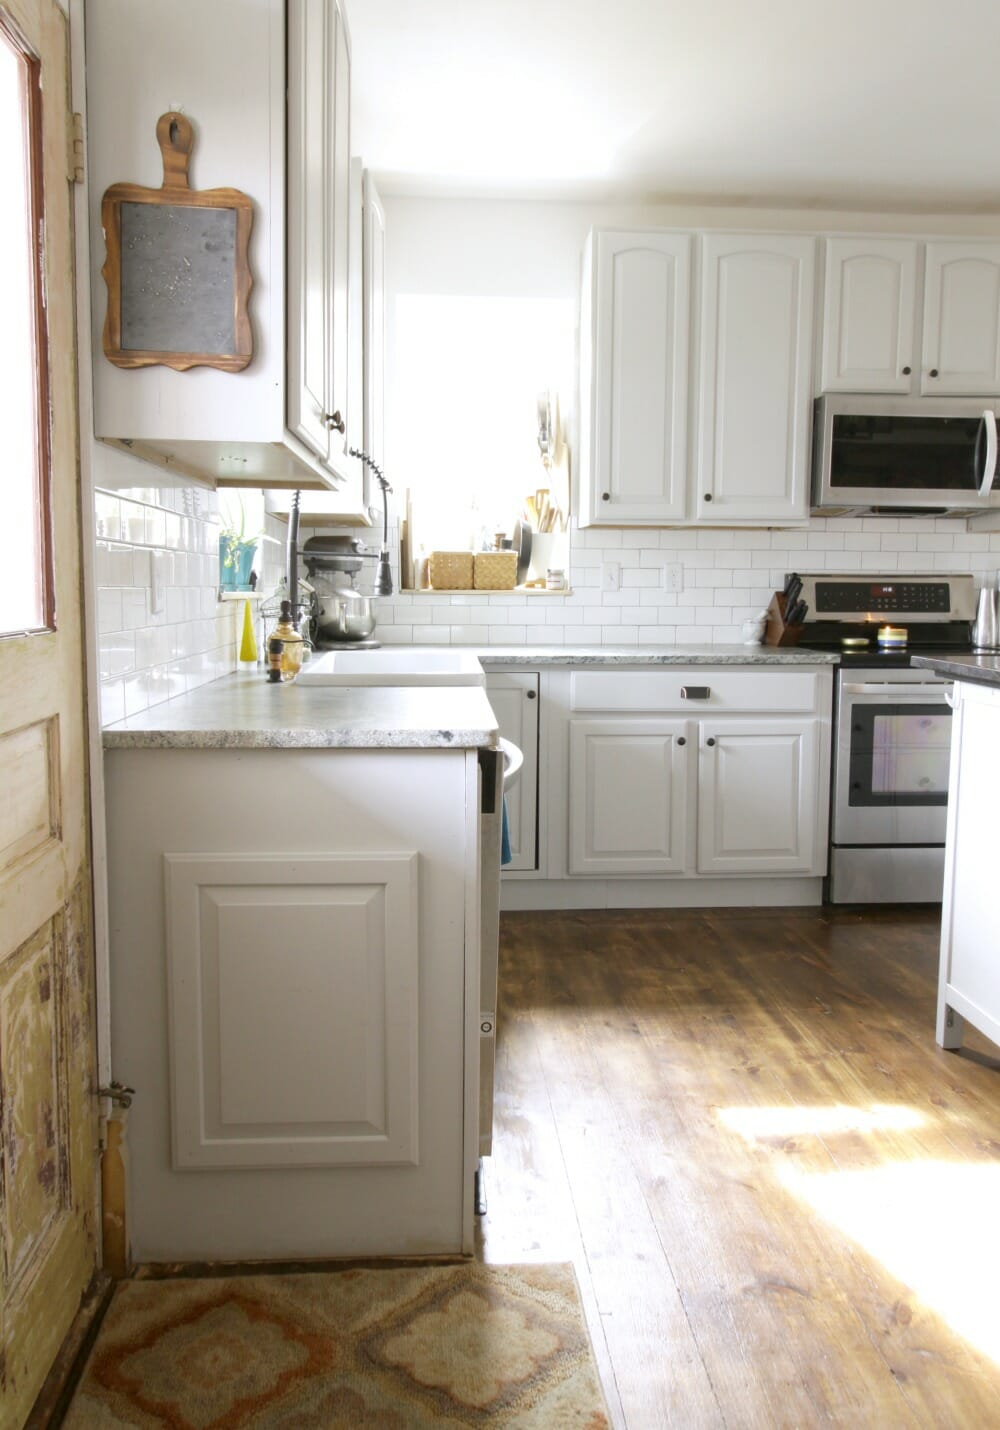 Fancy Gray Farmhouse Kitchen with Original Doors